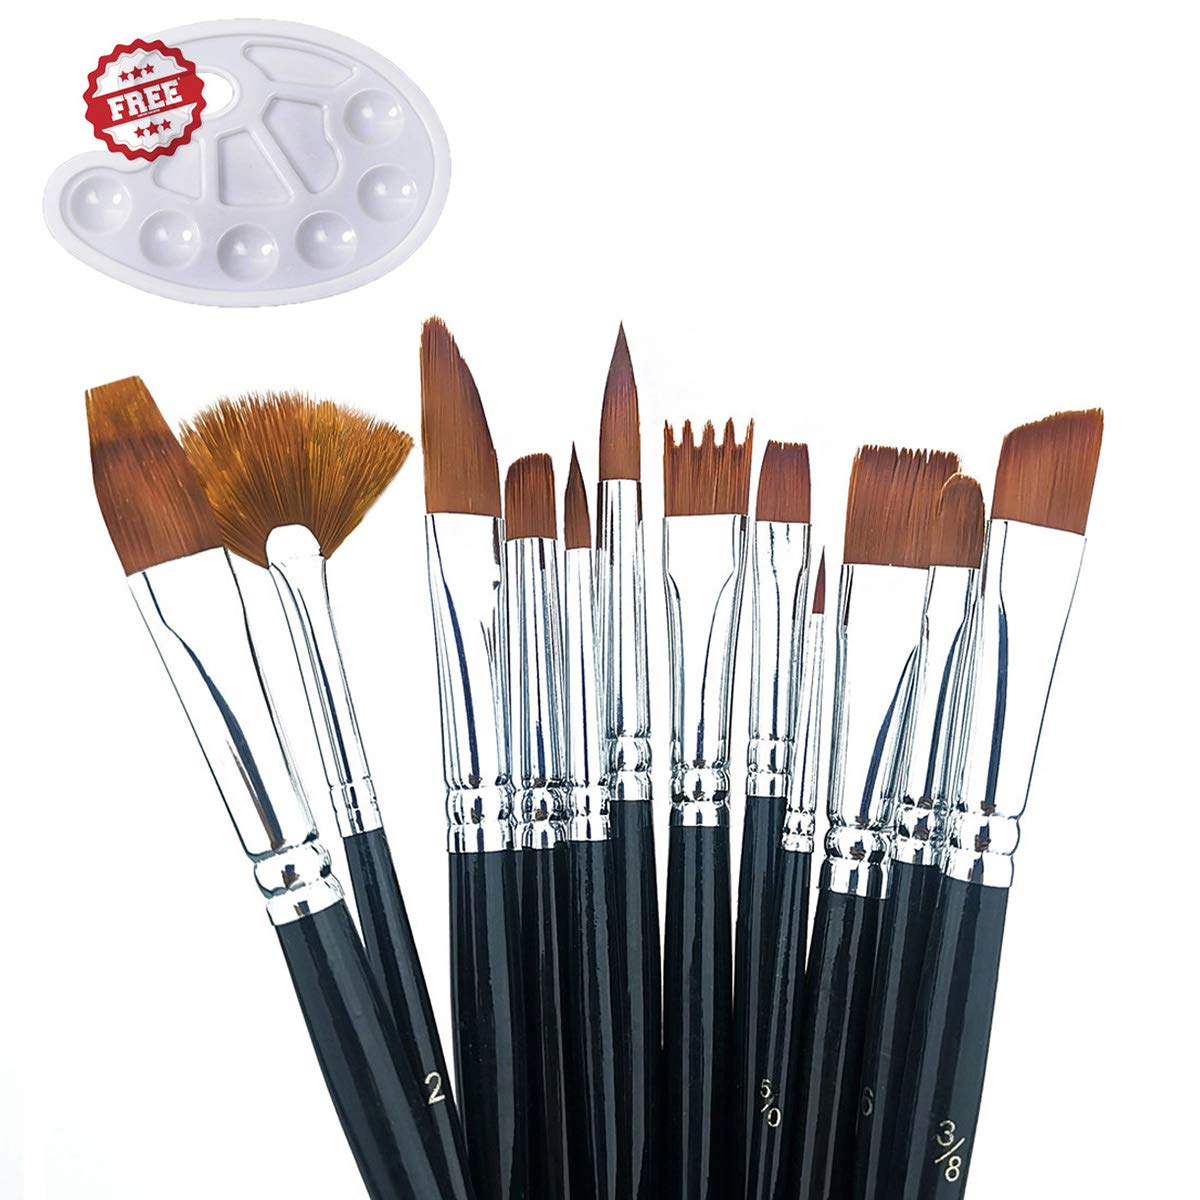 Watercolor Oil Acrylic Paint Brushes Set, Artist Face and Body Professional Painting Kits with Nylon Tips, 12 Pieces and a Paint Palette by longsee